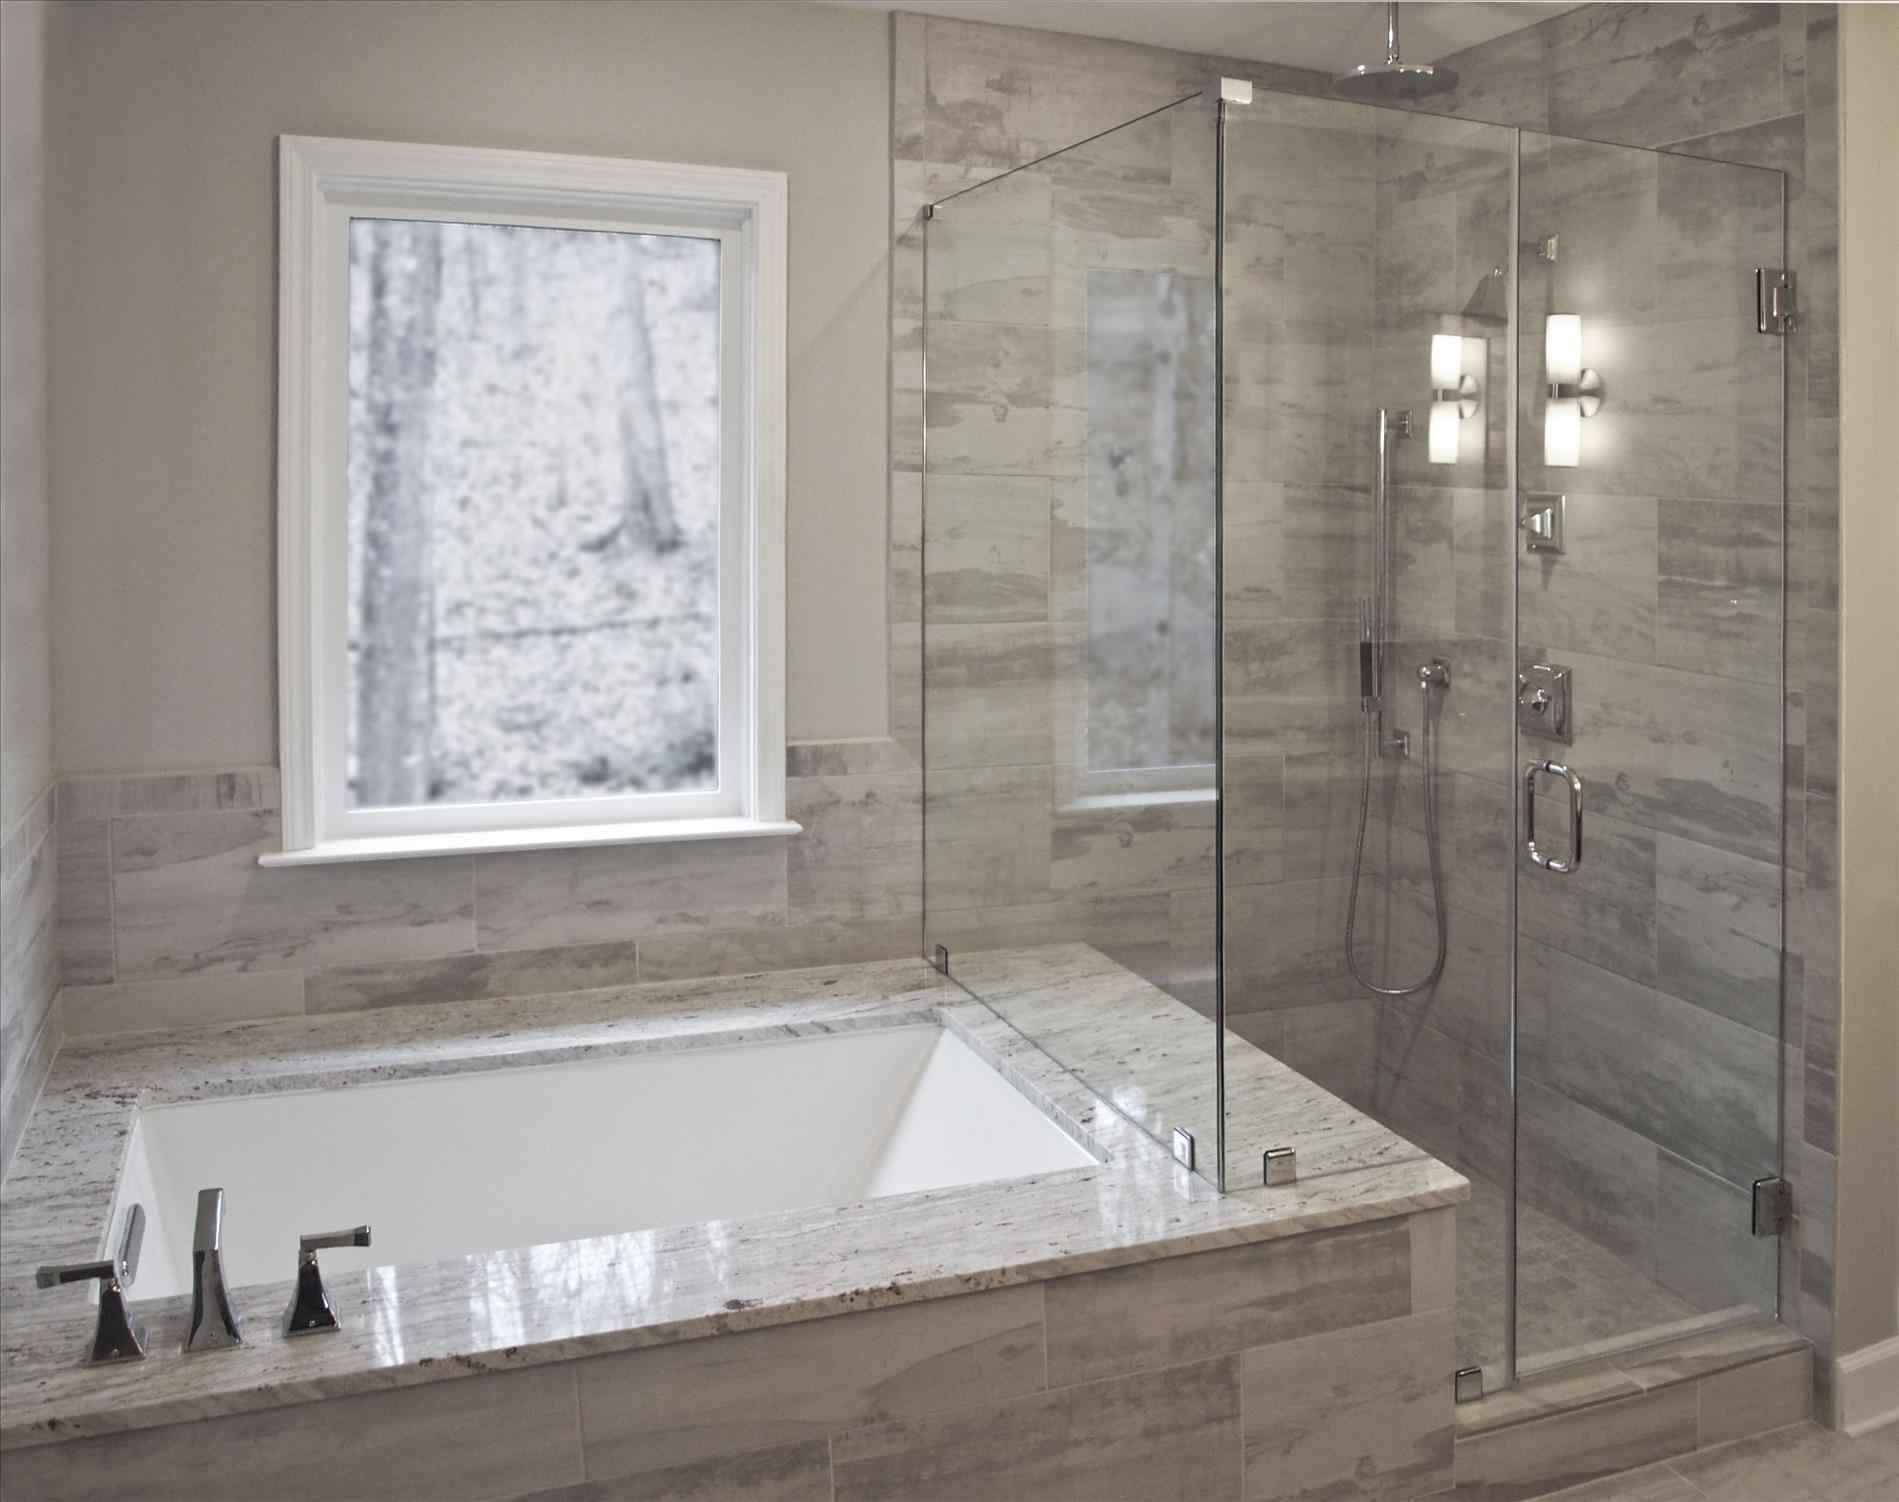 15 Gorgeous Built In Tub And Shower Design Ideas For Your